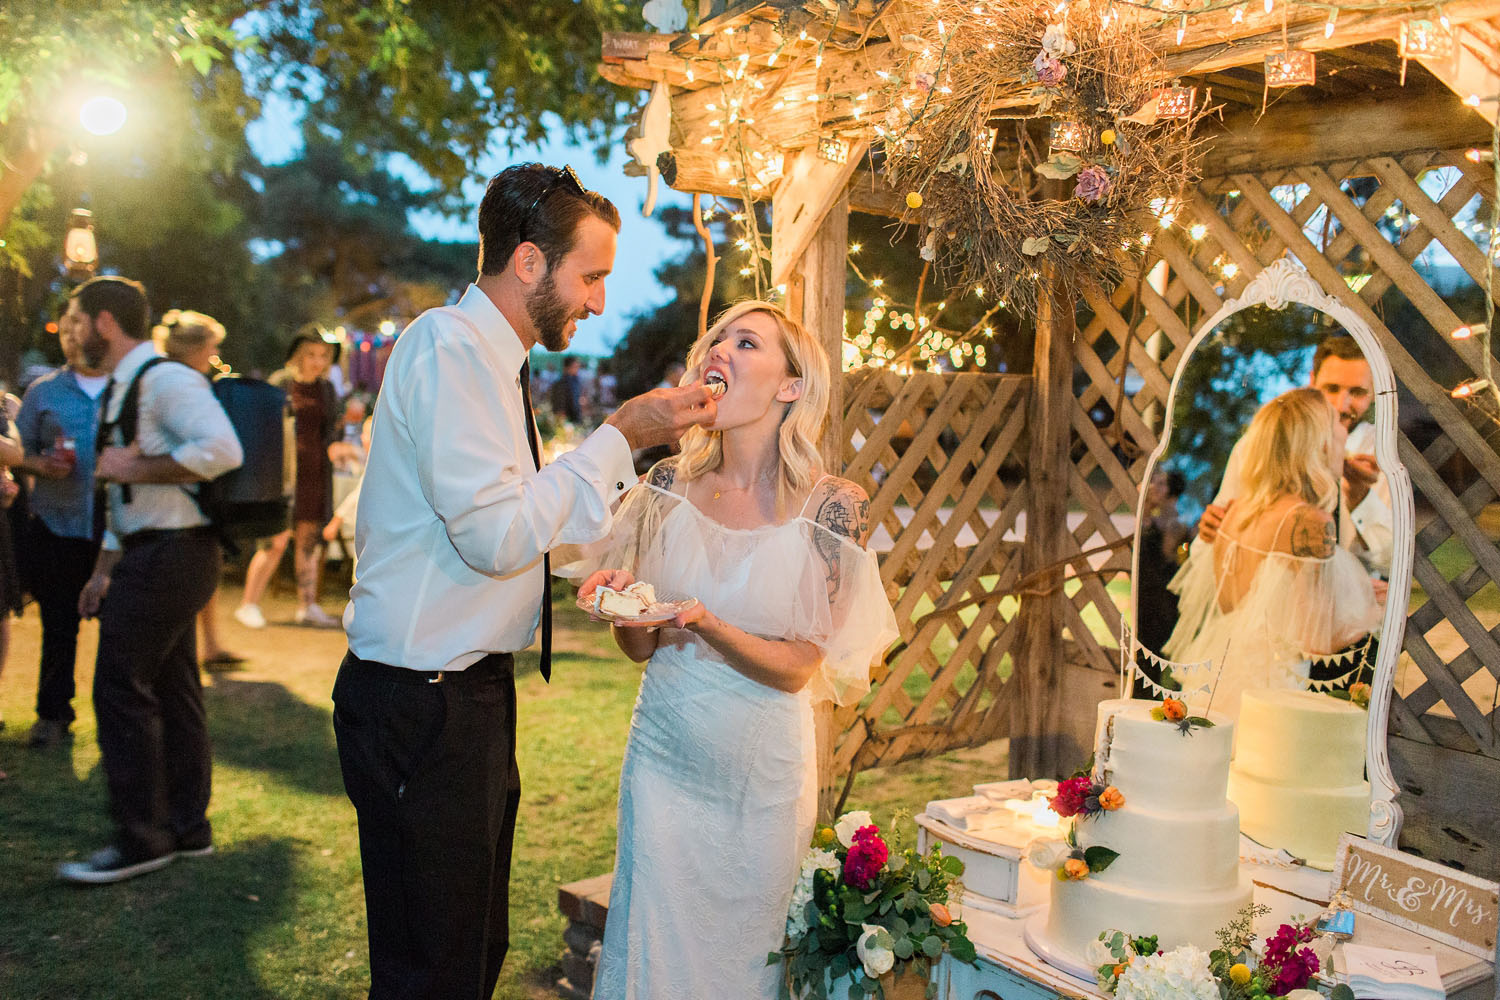 The Photege - Elegant Boho Wedding on Suburu Farm in Bakersfield California- Cassie and Darin Buoni-3076